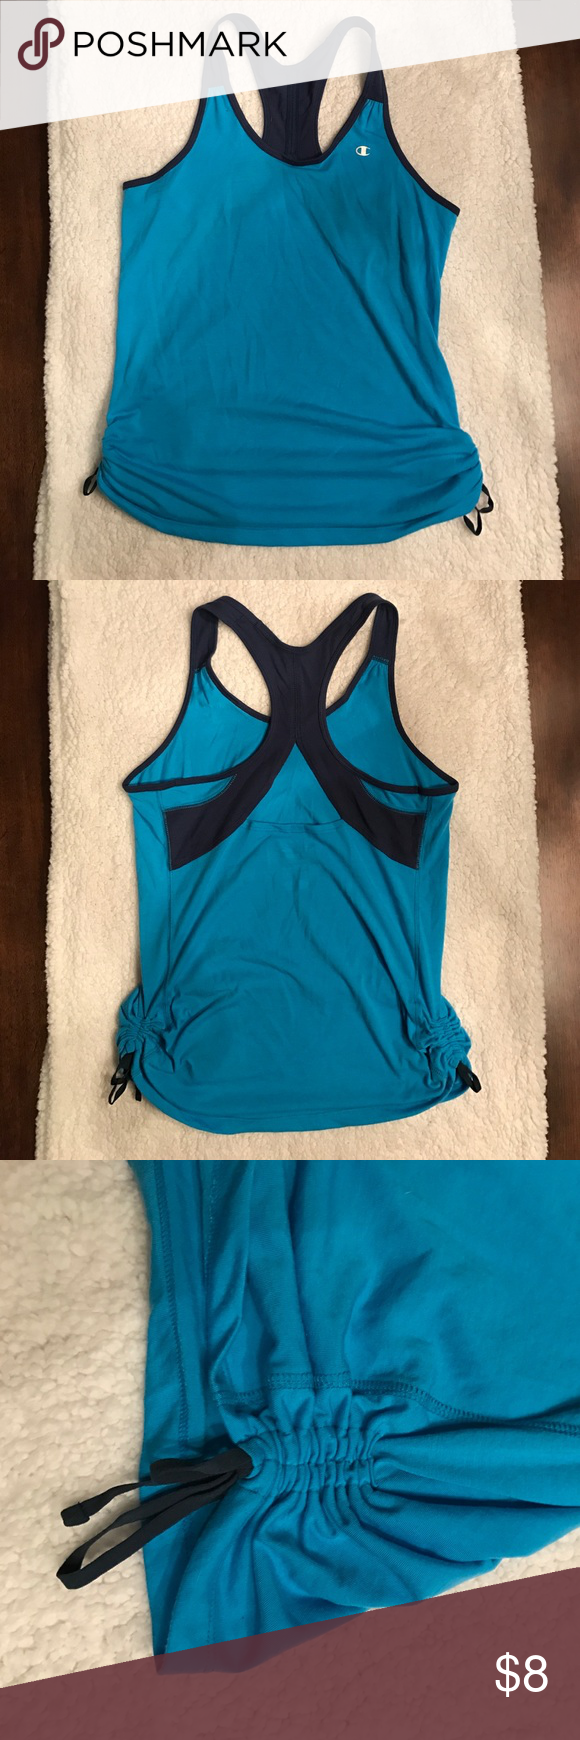 """Women's Champion tank top Super comfy, gently used with a great design, perfect for working out! """"Scrunch"""" tie sides and loose-fitting overall! Only worn ONCE! champion powertrain Tops Tank Tops"""